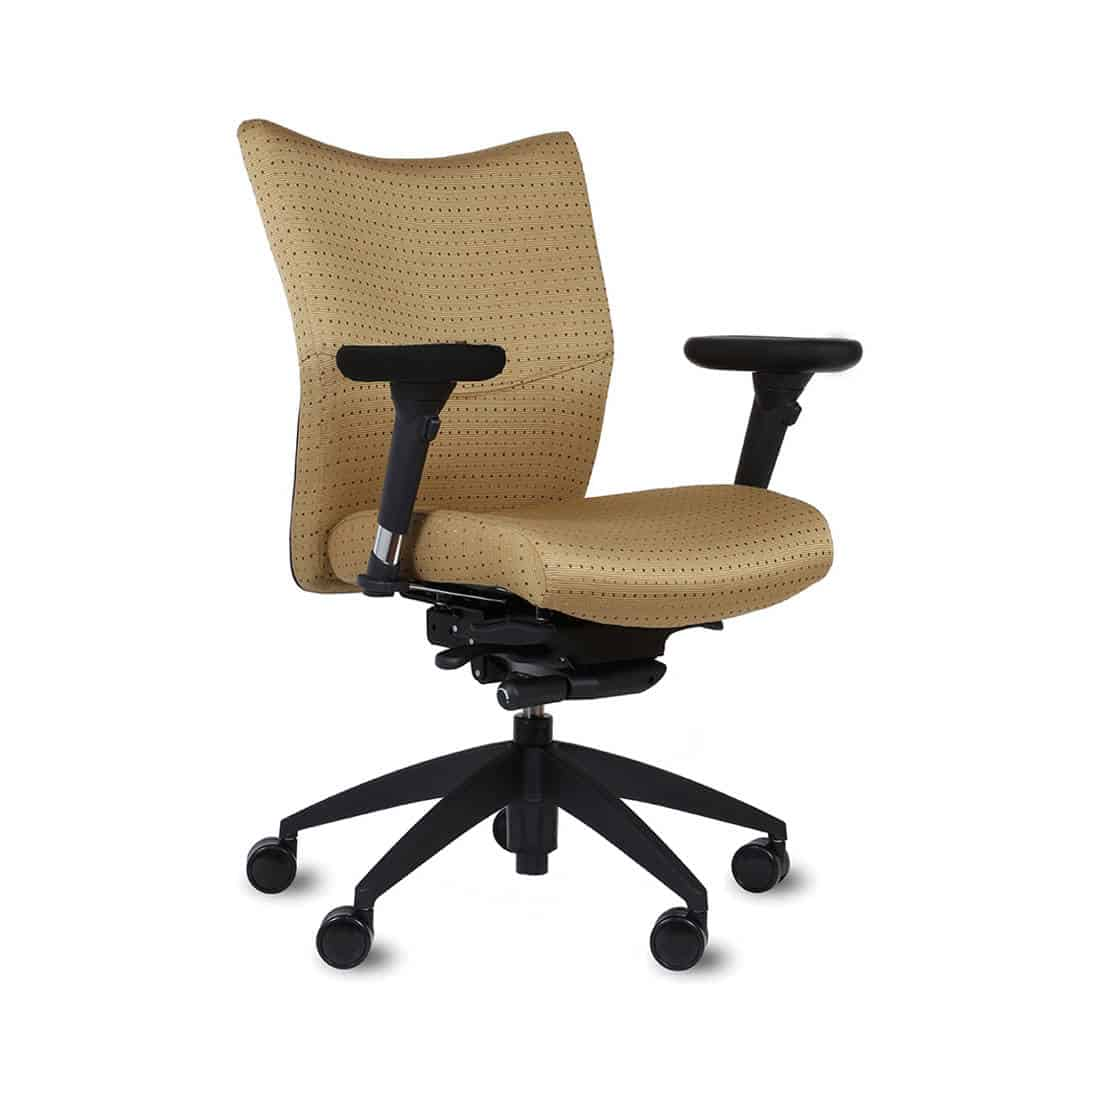 9 to 5 Bristol Mid Back Fully Upholstered Task Chair 6-way adjustable arms